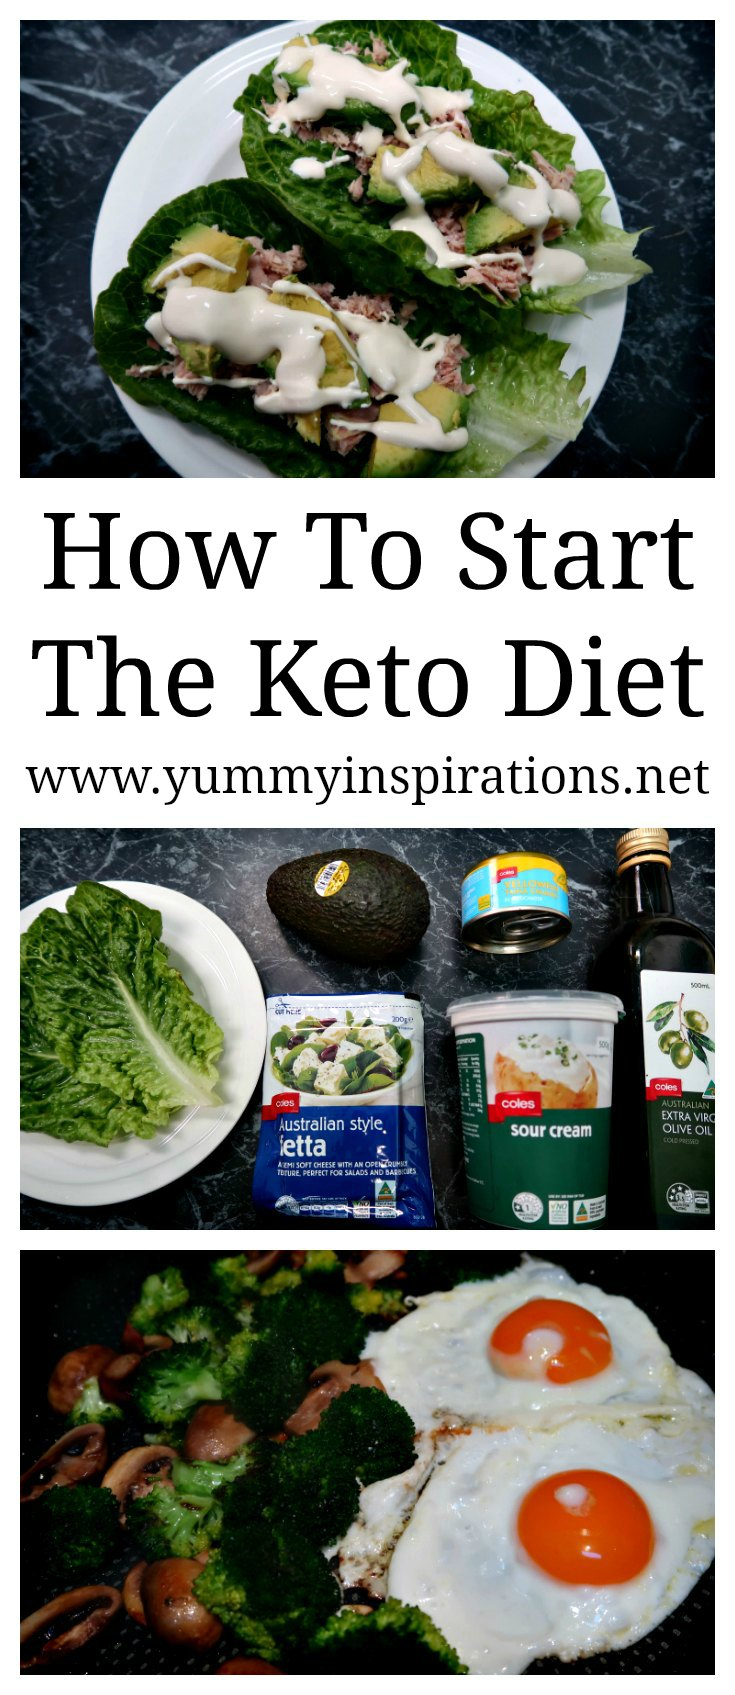 How To Start The Keto Diet - Tips to help you get started and lose weight